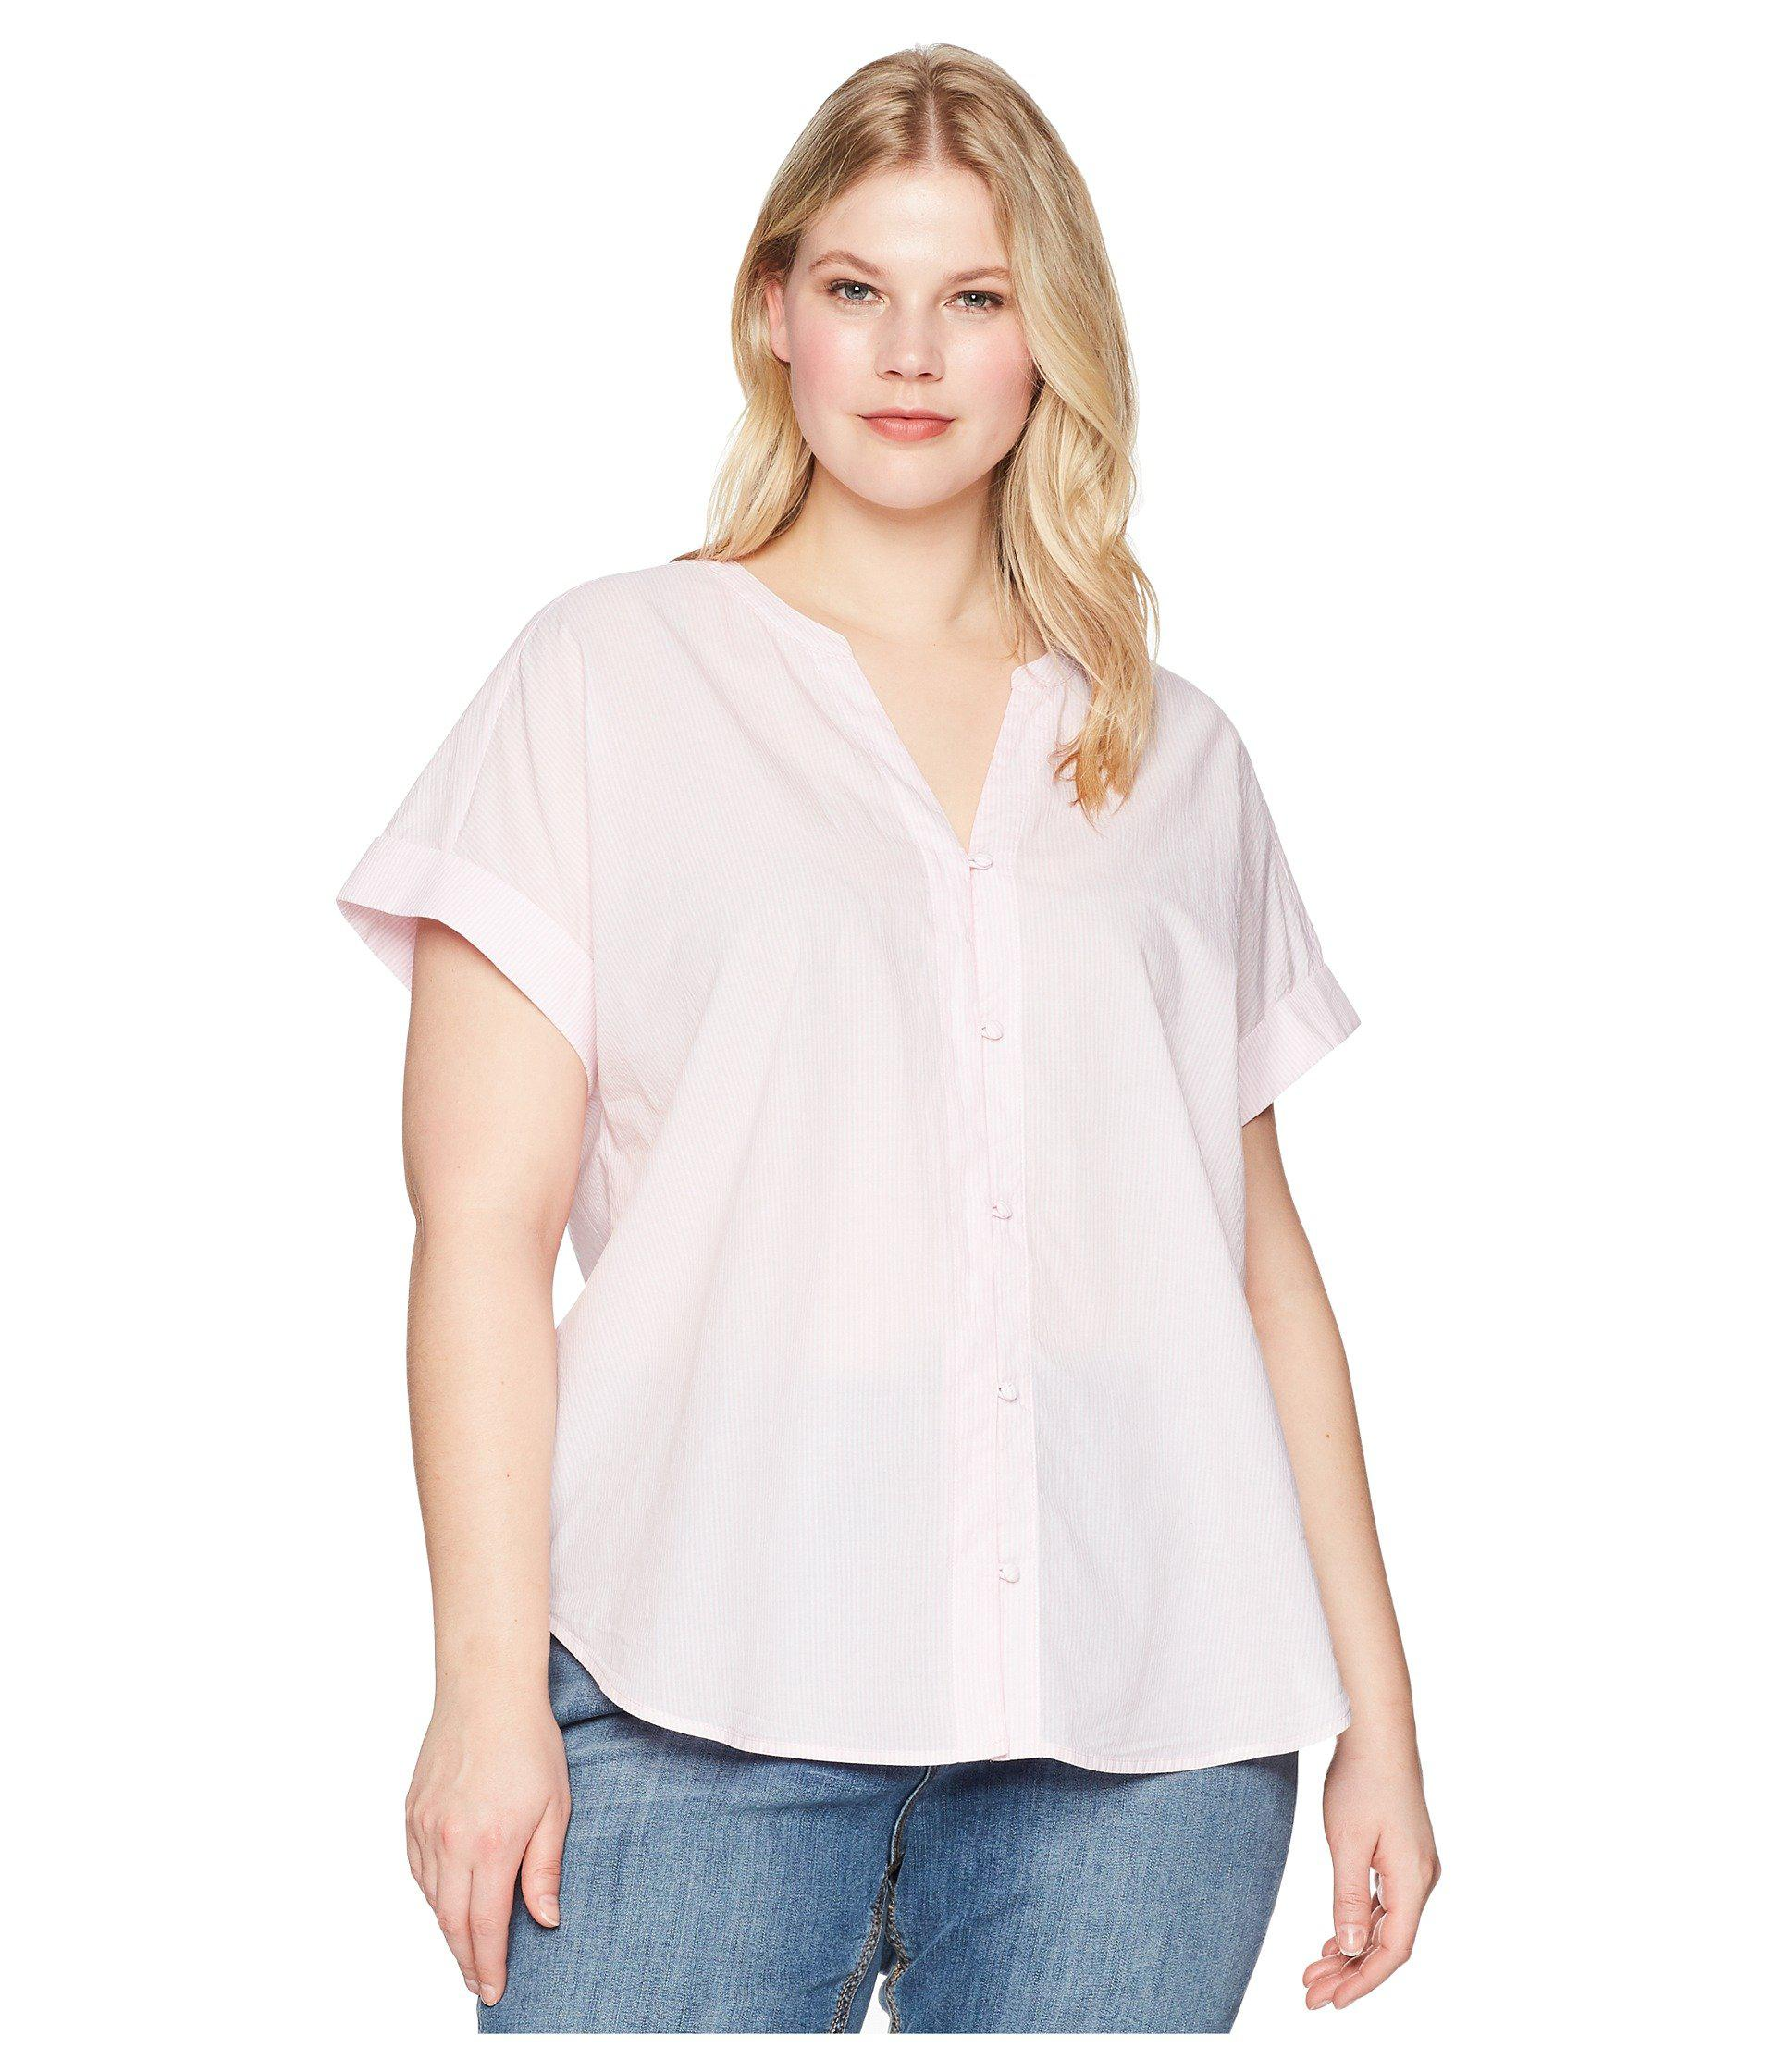 Plus Size White Dress With Short Sleeves – DACC